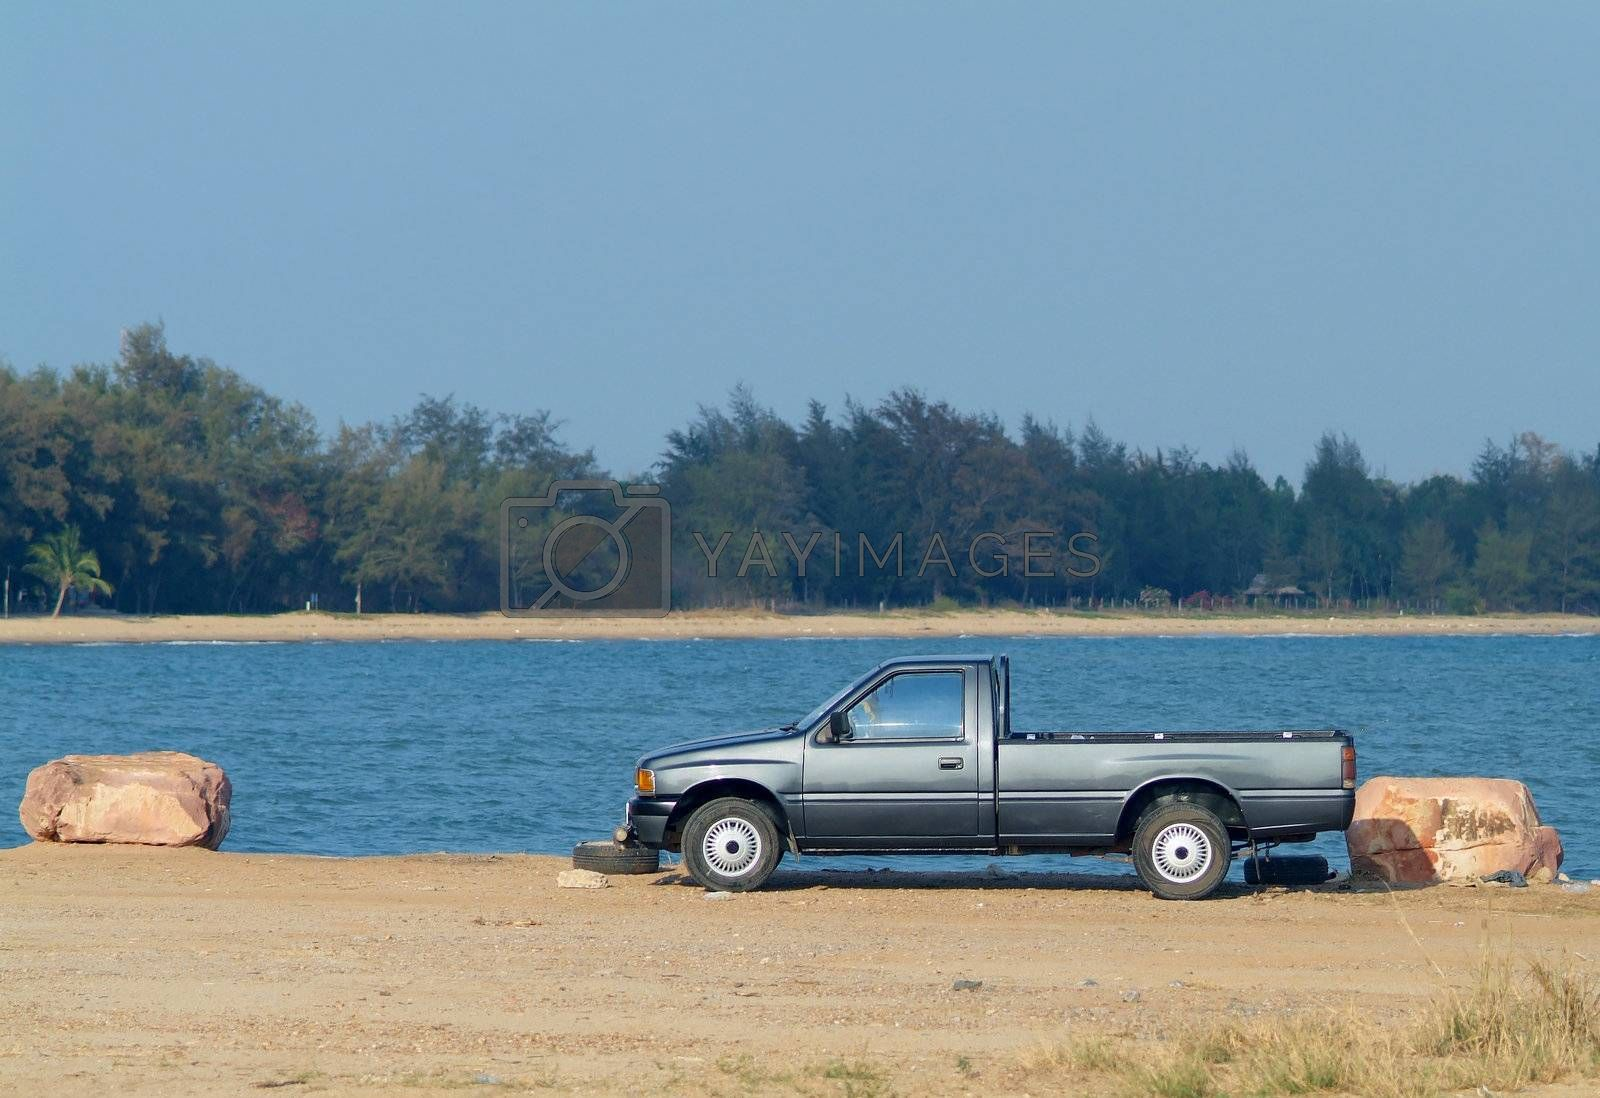 Pickup truck at the waterfront by epixx